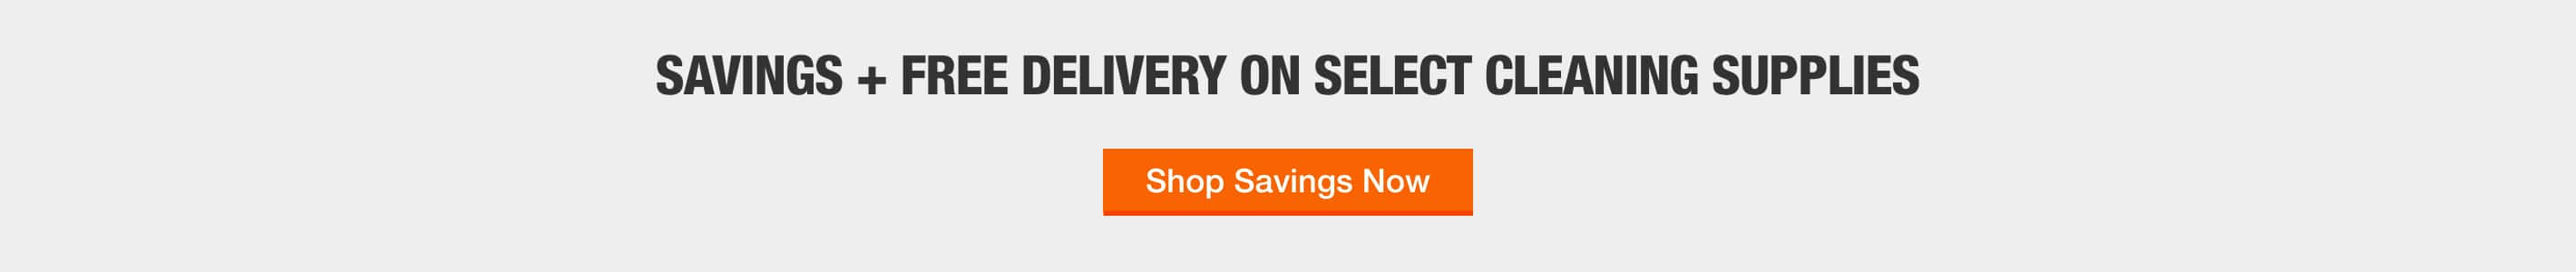 SAVINGS + FREE DELIVERY ON SELECT CLEANING SUPPLIES Shop Savings Now